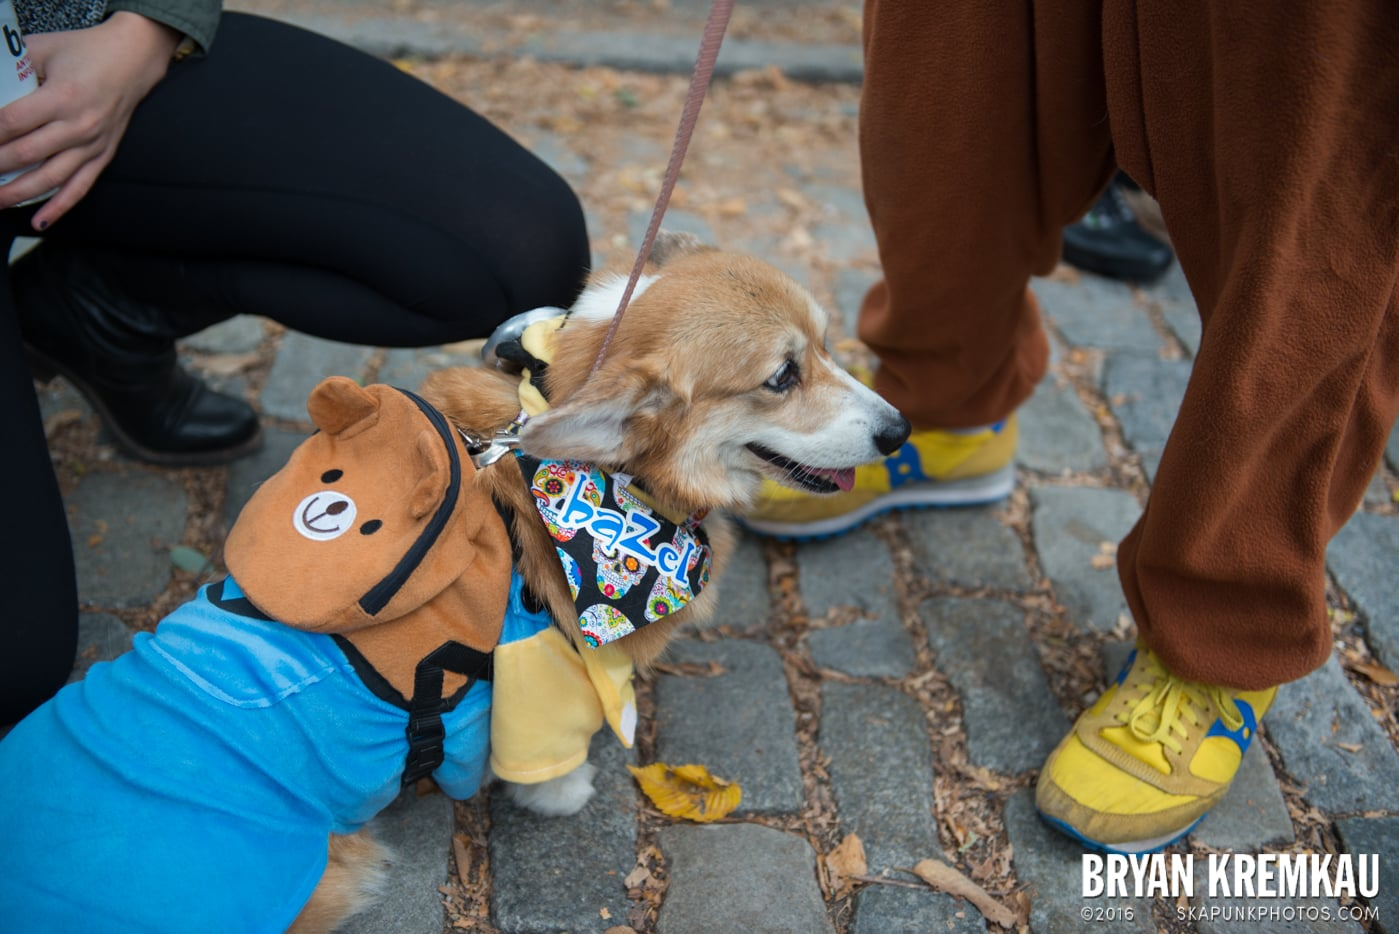 Tompkins Square Halloween Dog Parade 2015 @ Tompkins Square Park, NYC – 10.24.15 (12)